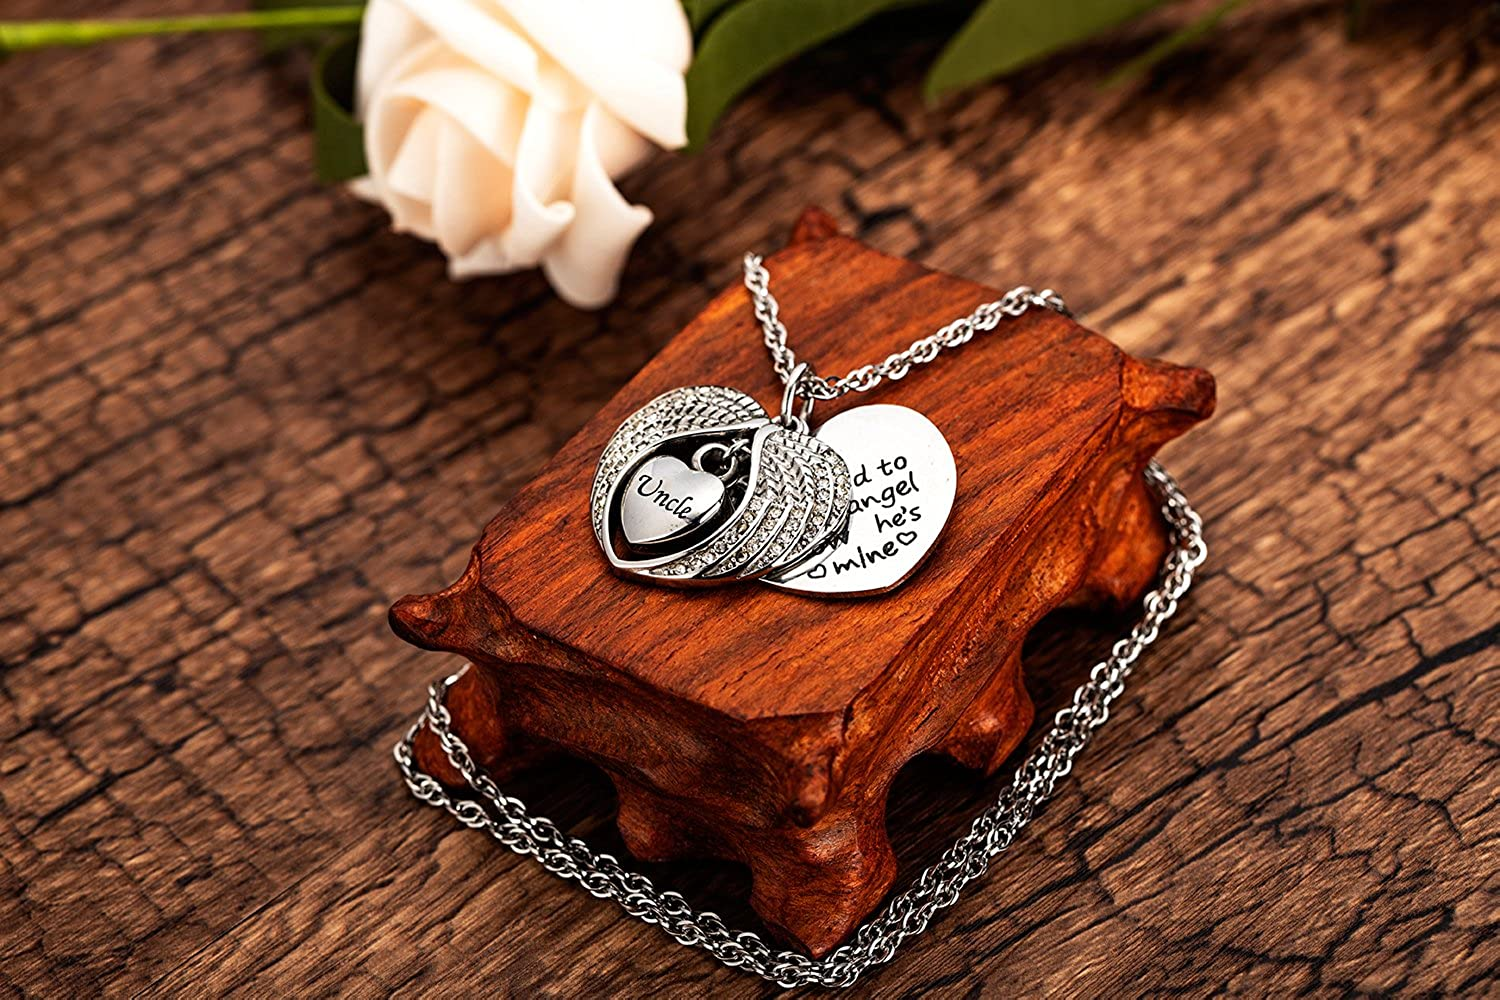 IMEIM Angel Wings Cremation Urn Memorial Necklace for Ashes Stainless Steel Pendant Unique Small Jewelry Special Art Store Memories Keep Alive Forever Spiritual Eternity Grandma